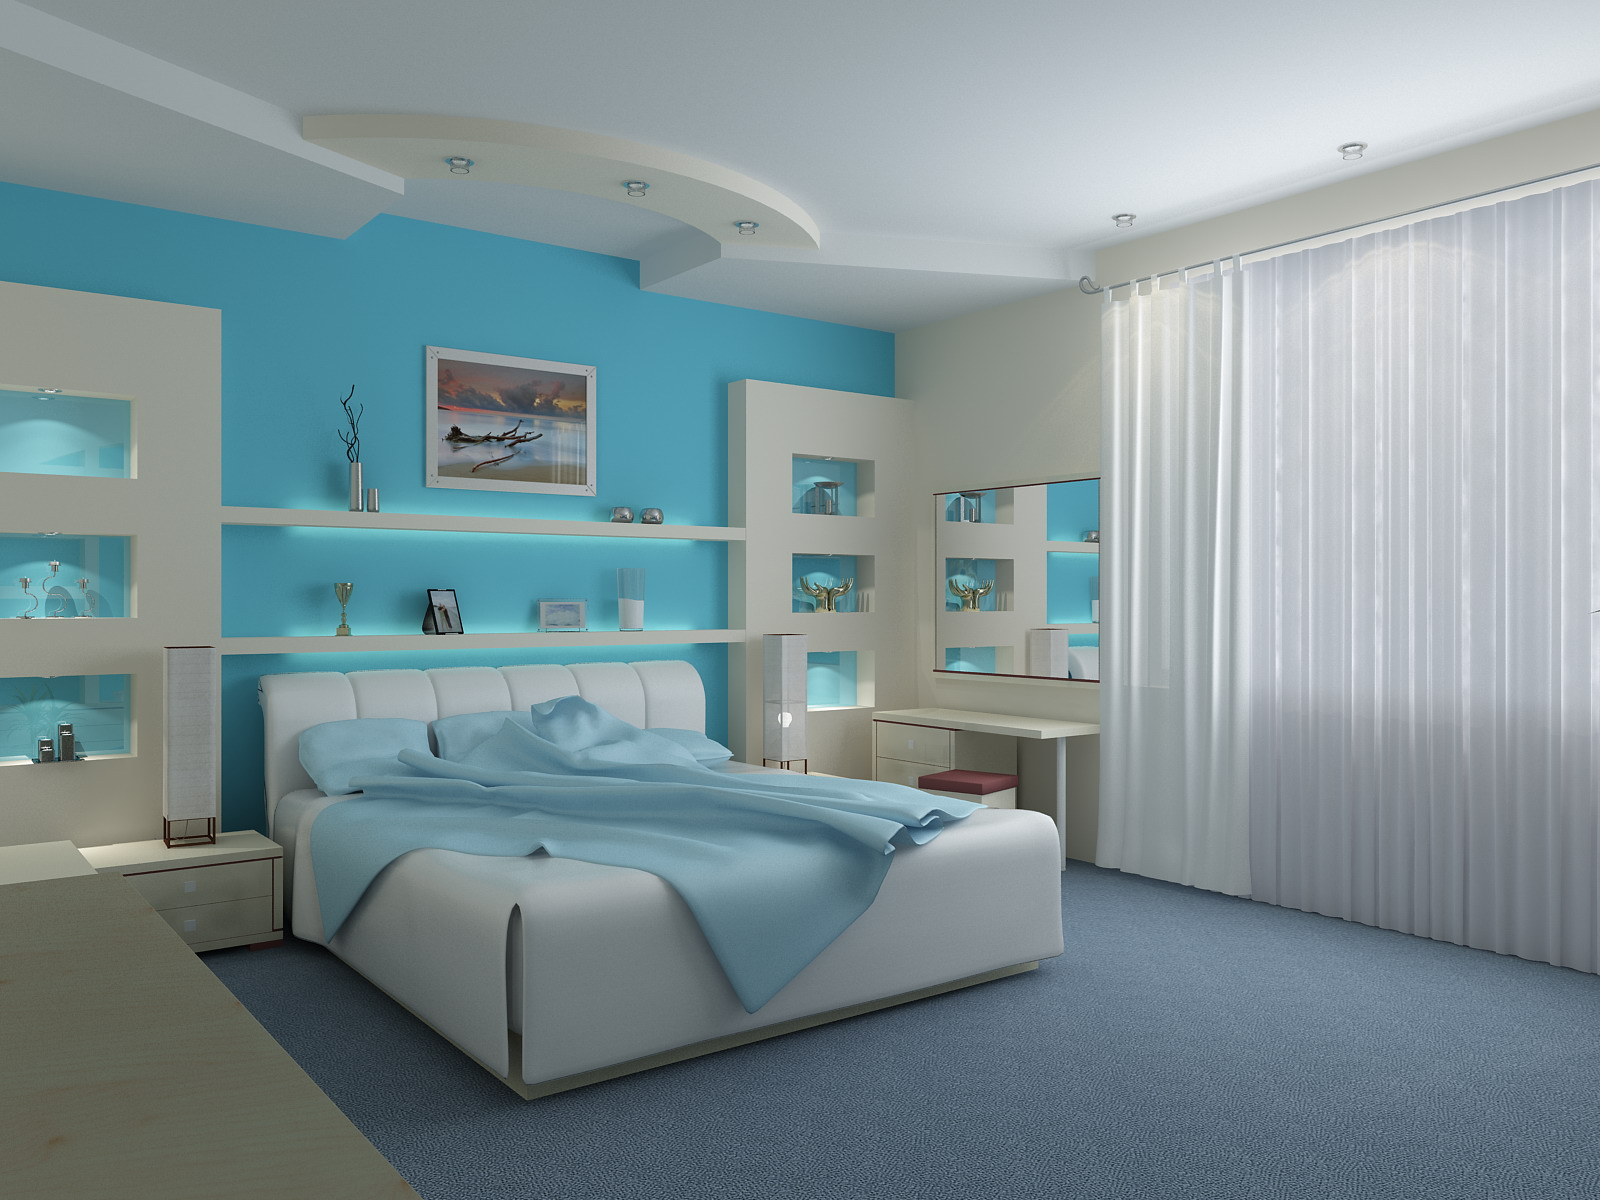 Light blue wall colors - Light Blue Color And Psychology